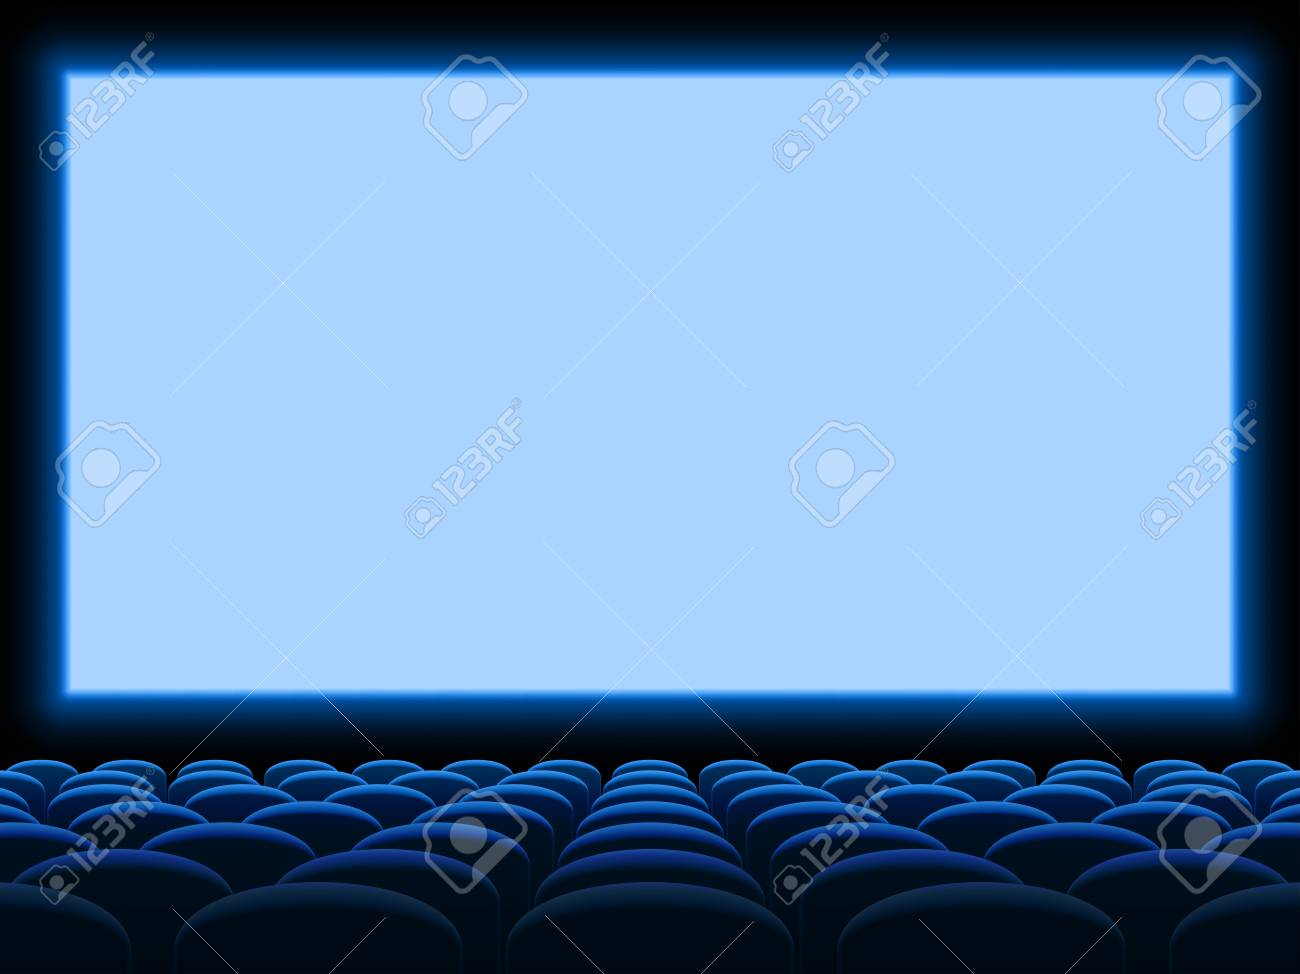 Movie Cinema Screen Vector Background Template With Empty Blue Royalty Free Cliparts Vectors And Stock Illustration Image 113501897